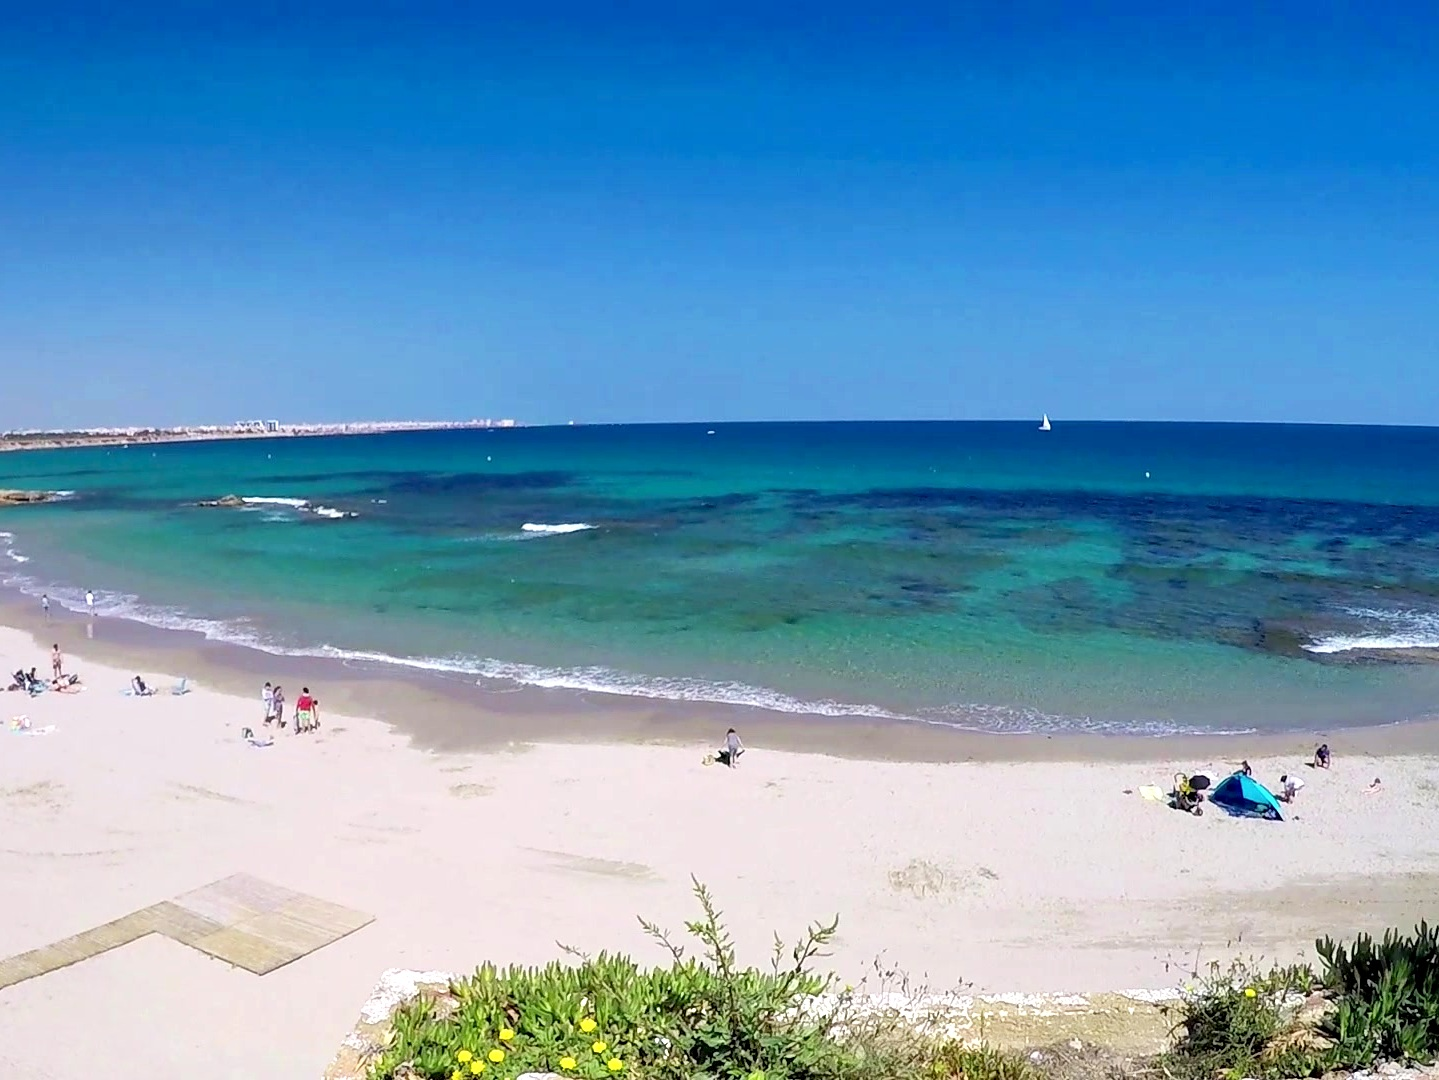 Playa de Cabo Roig - If you are looking for a clear, open and sublime place to relax then this beach will suit you well. With amazing views of Torrevieja, Orihuela Costa and La Manga, you will experience relaxation like never before.